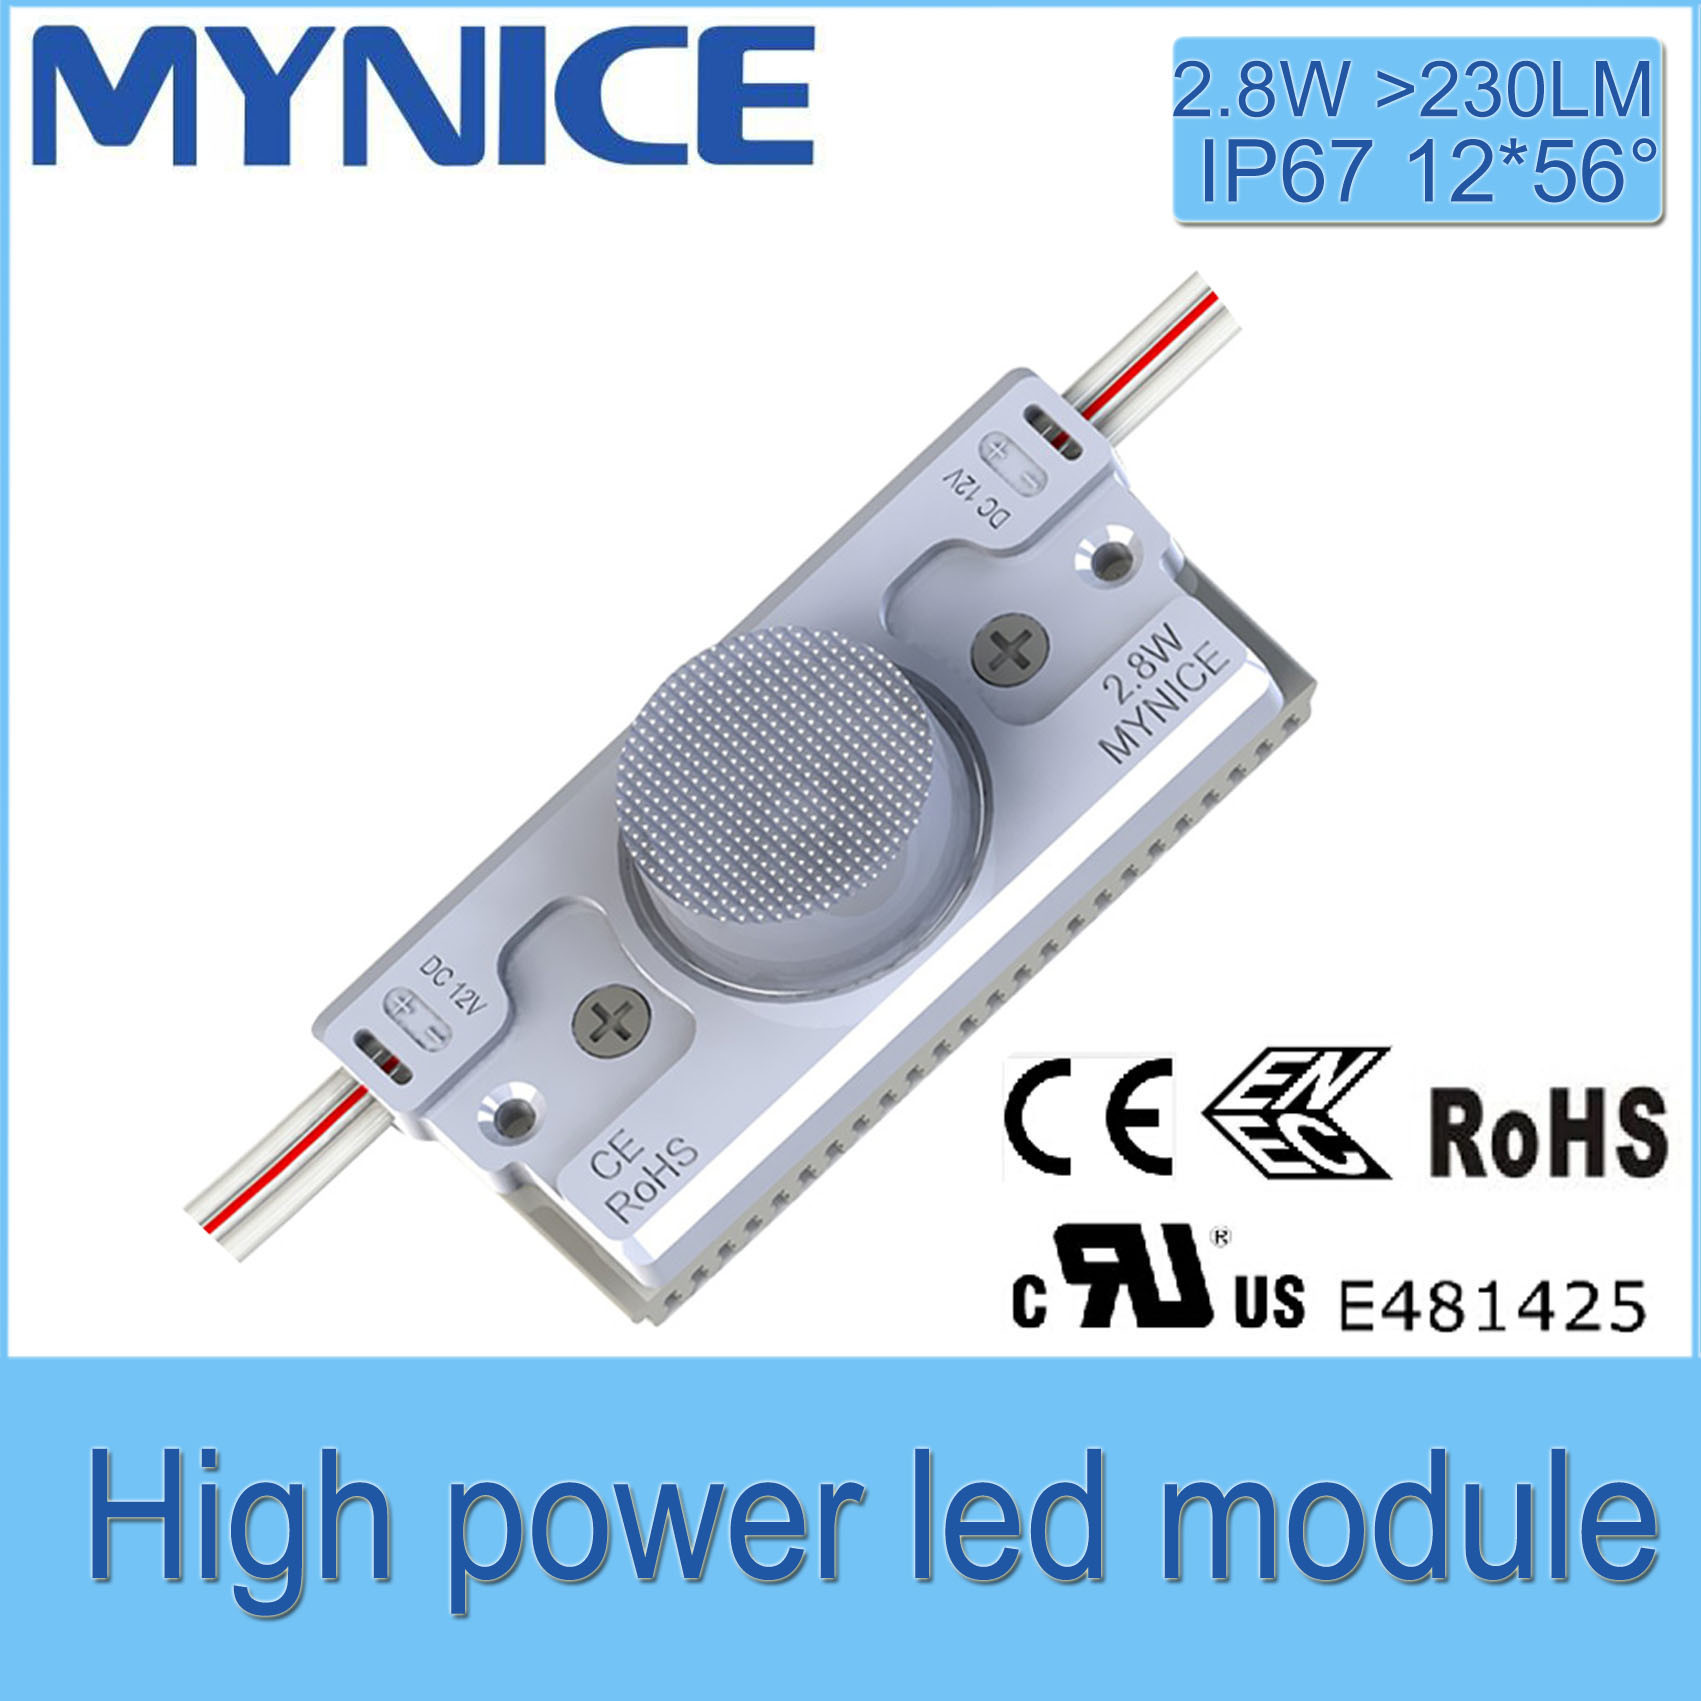 2.8W LED Injection Module with Lens for Double-Sided Light Box 5years Warranty